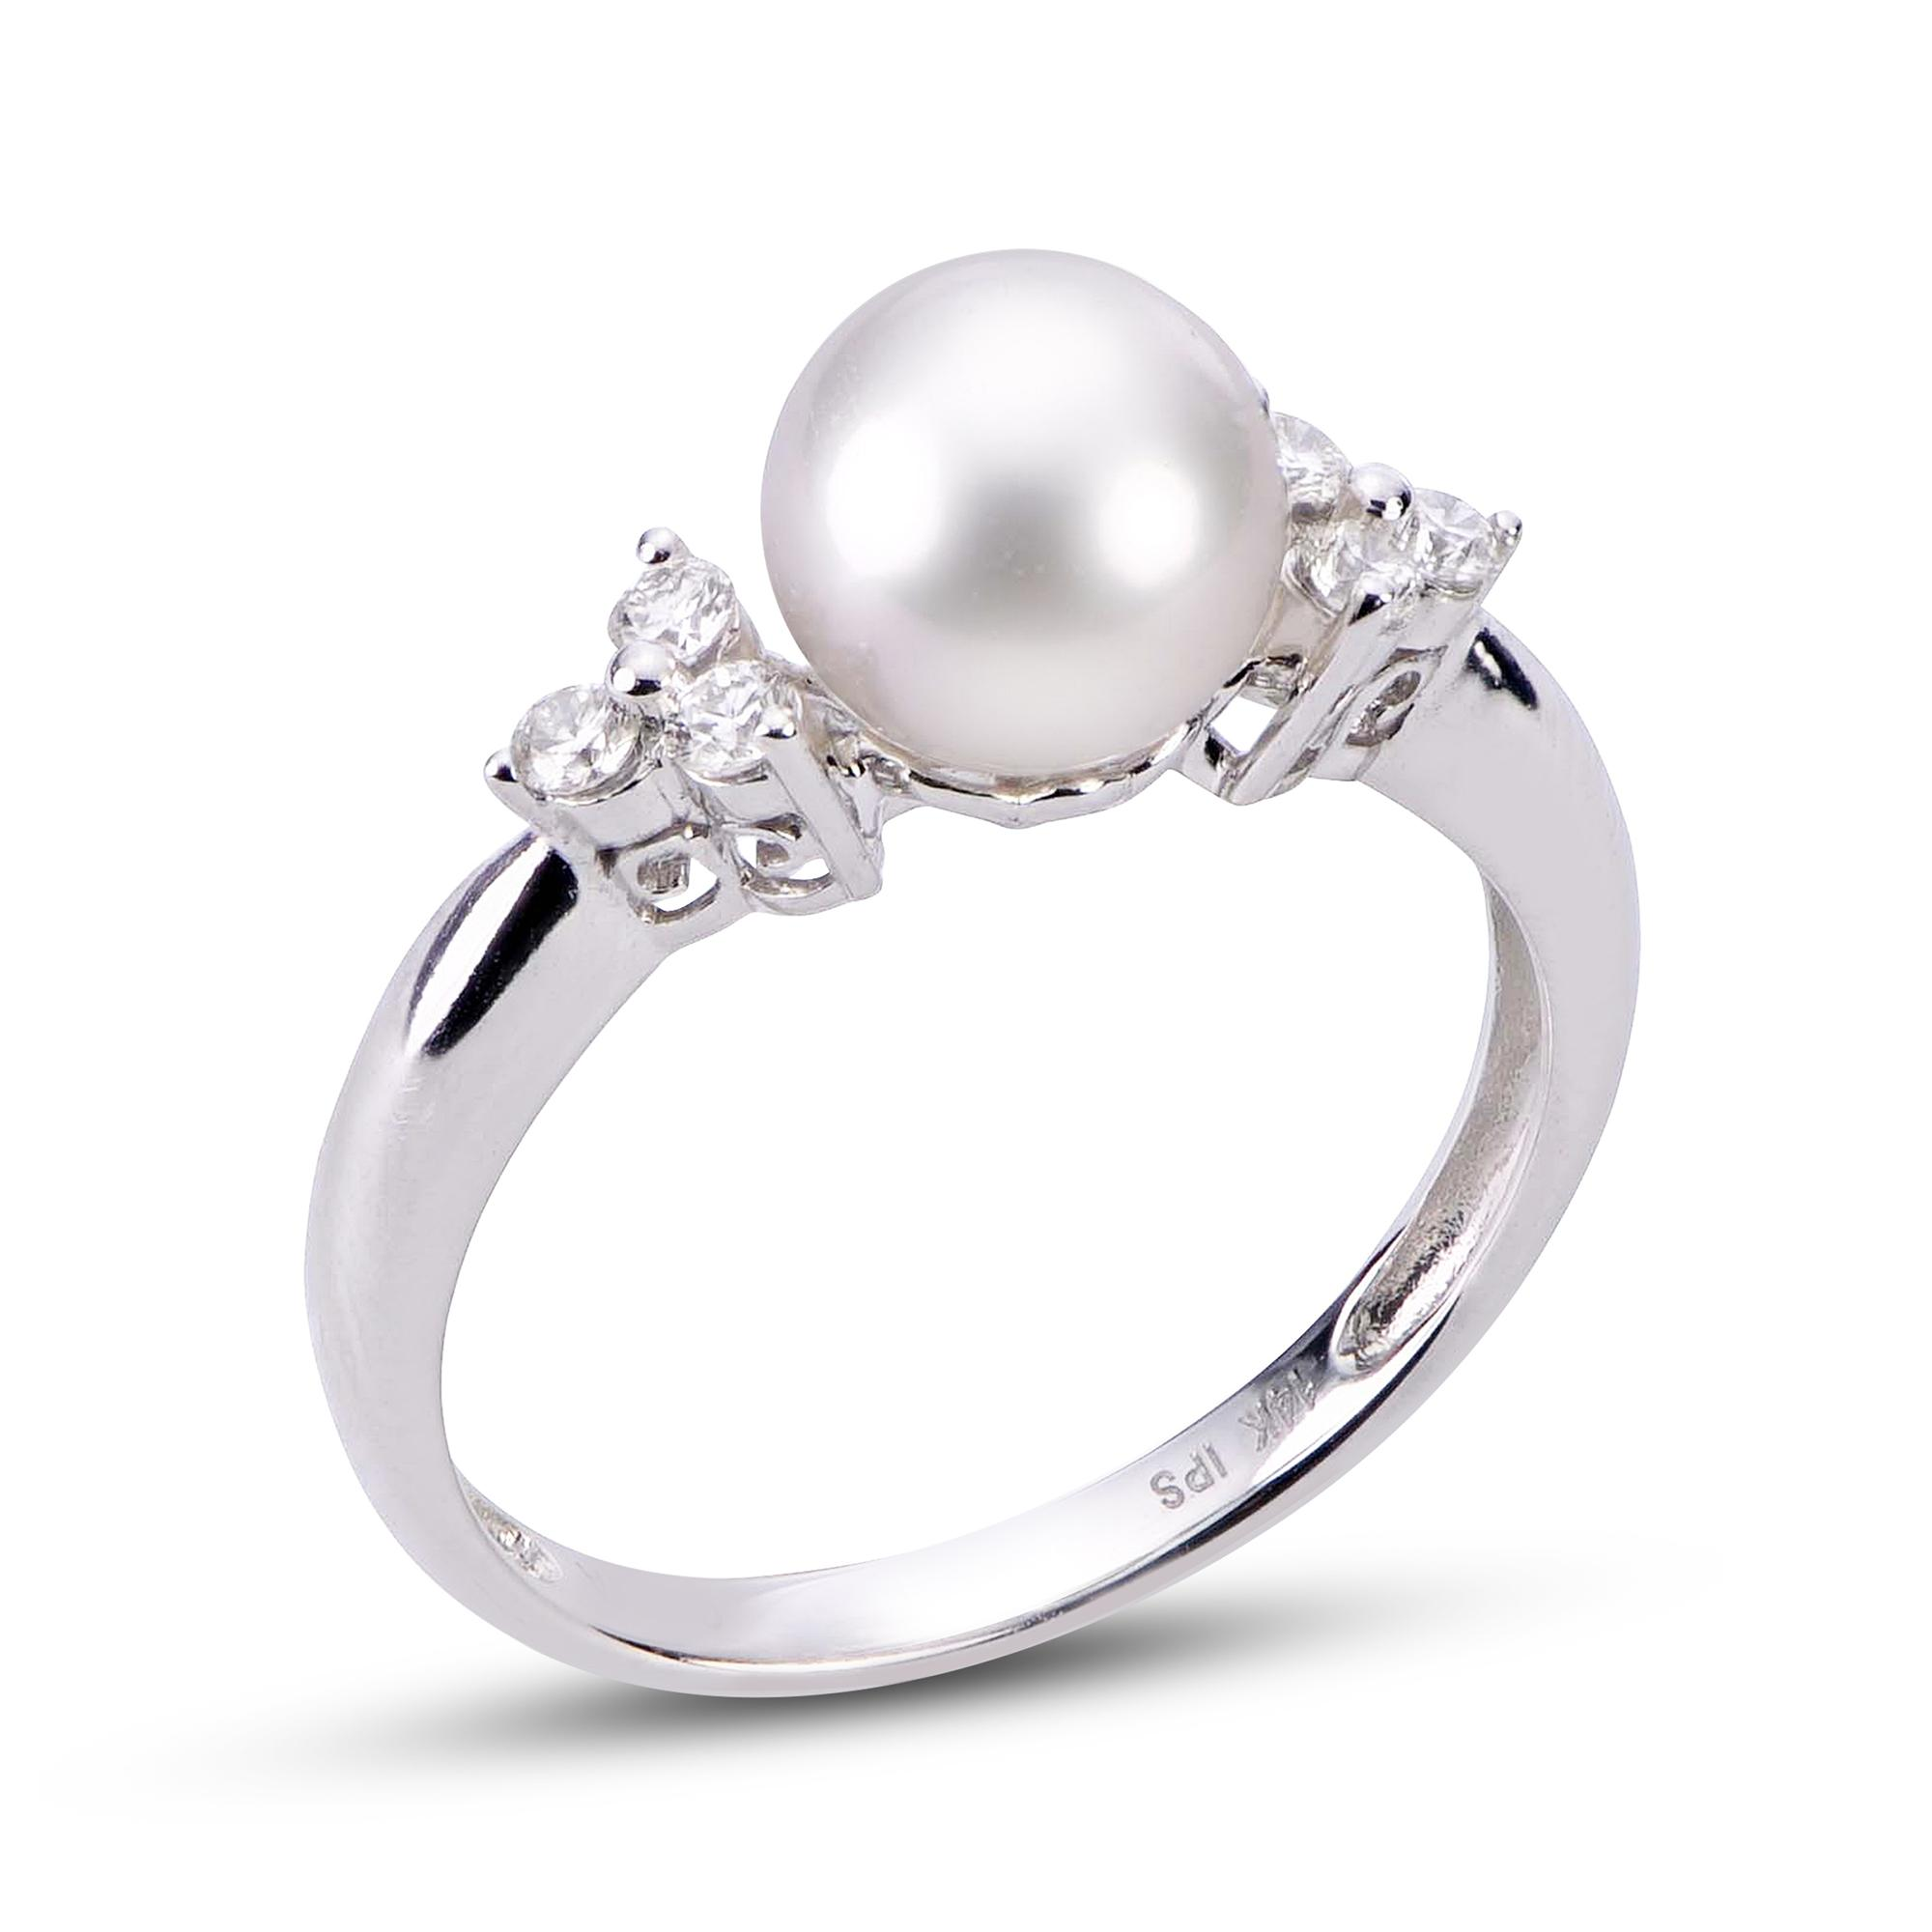 104649604 14K White Gold Akoya Pearl Ring 914274/WH | Rings from McKenzie ...